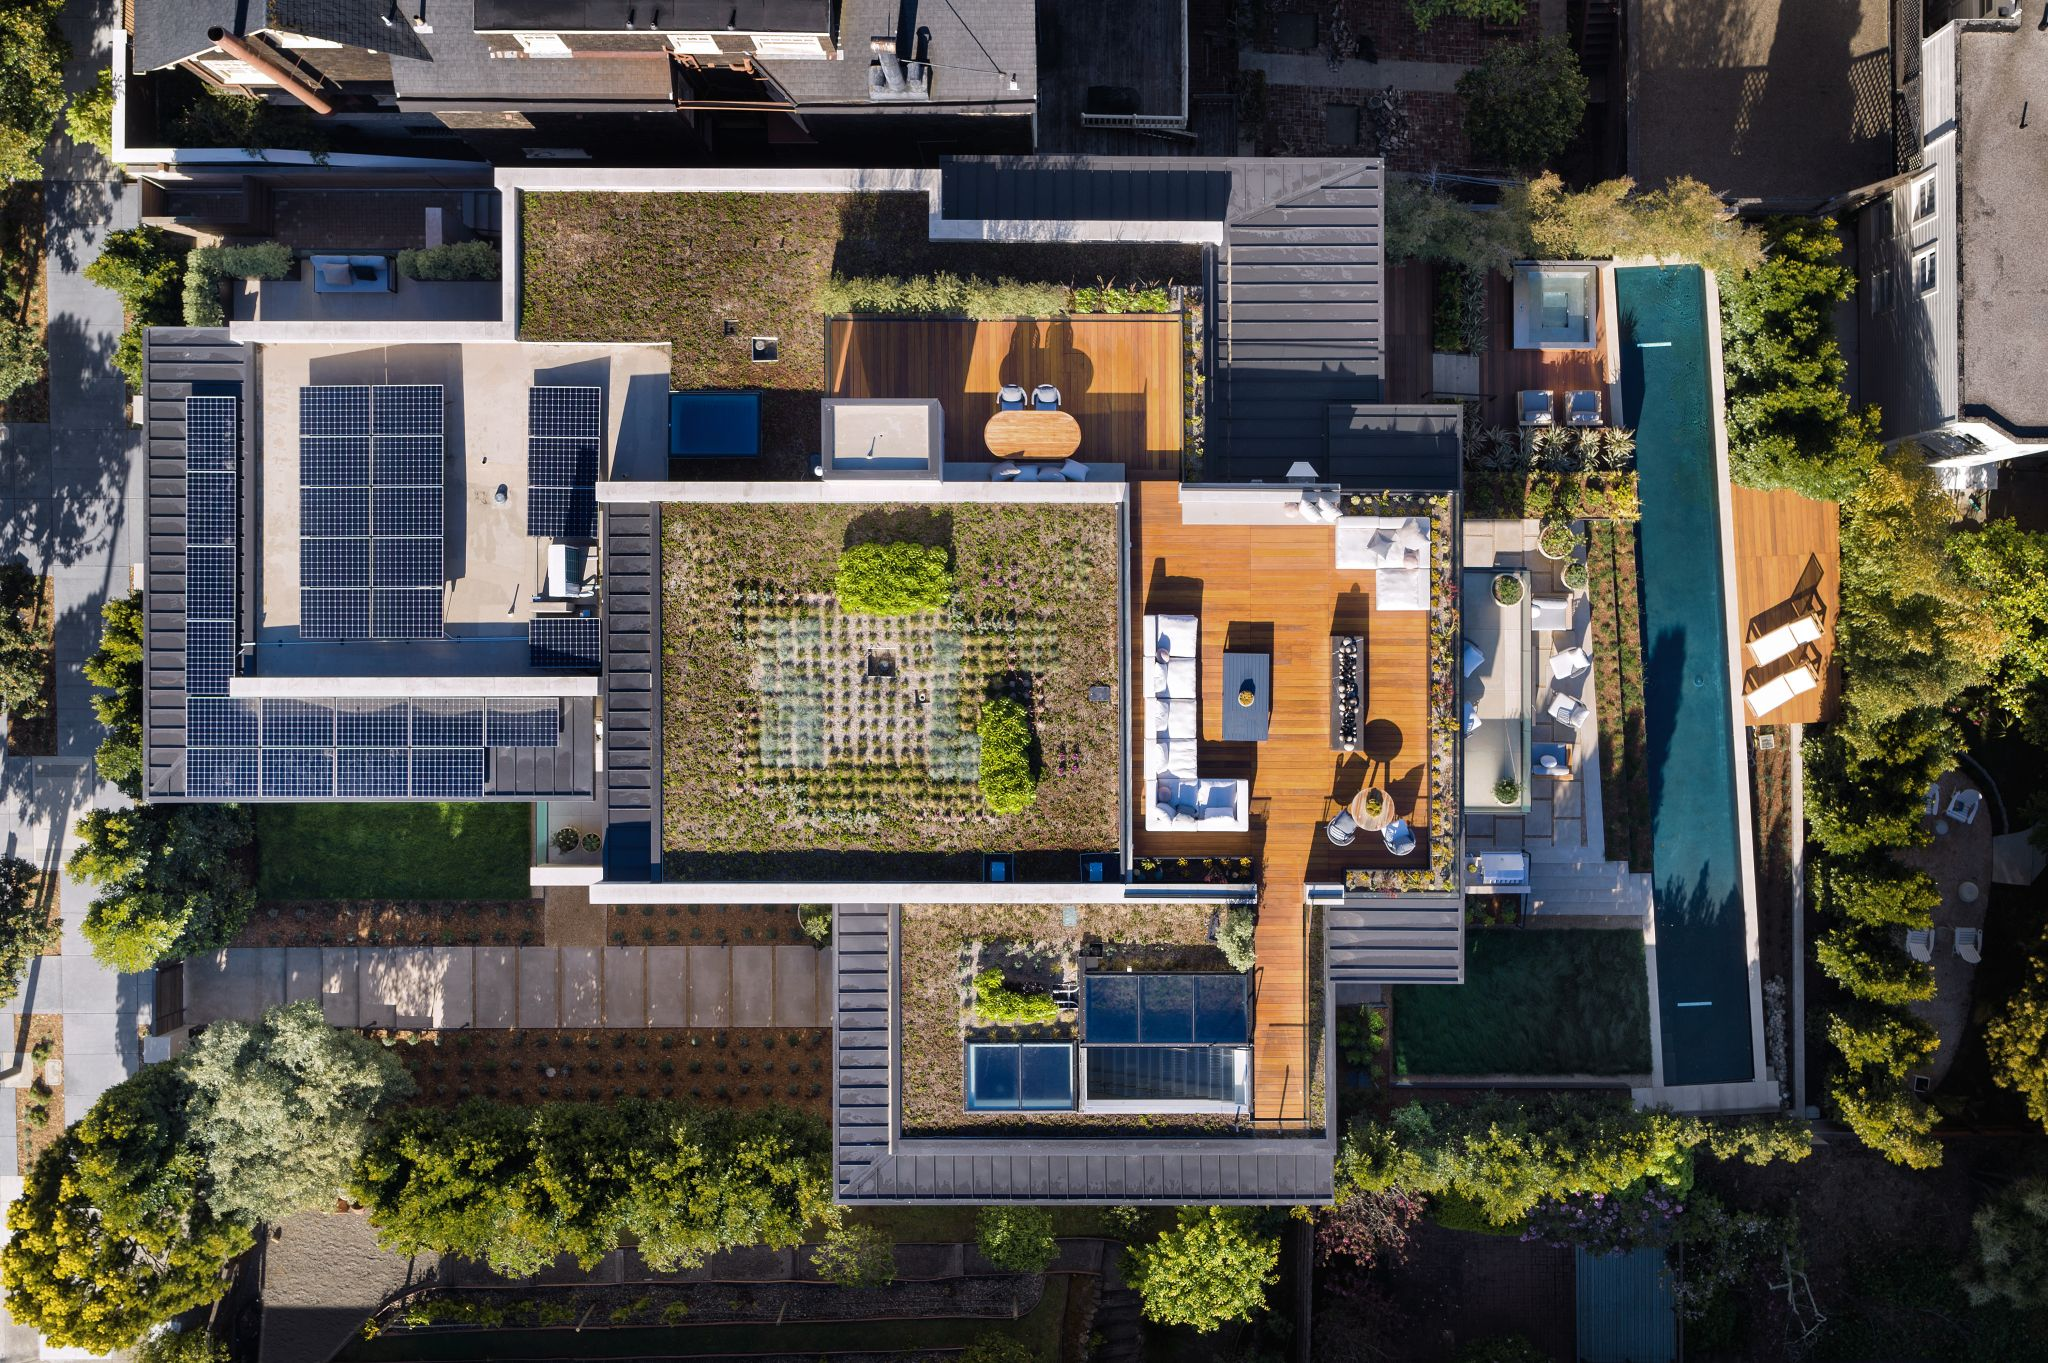 Chasing LEED Platinum certification, architects included a solar array that provides approximately 28% of the home's energy demand.